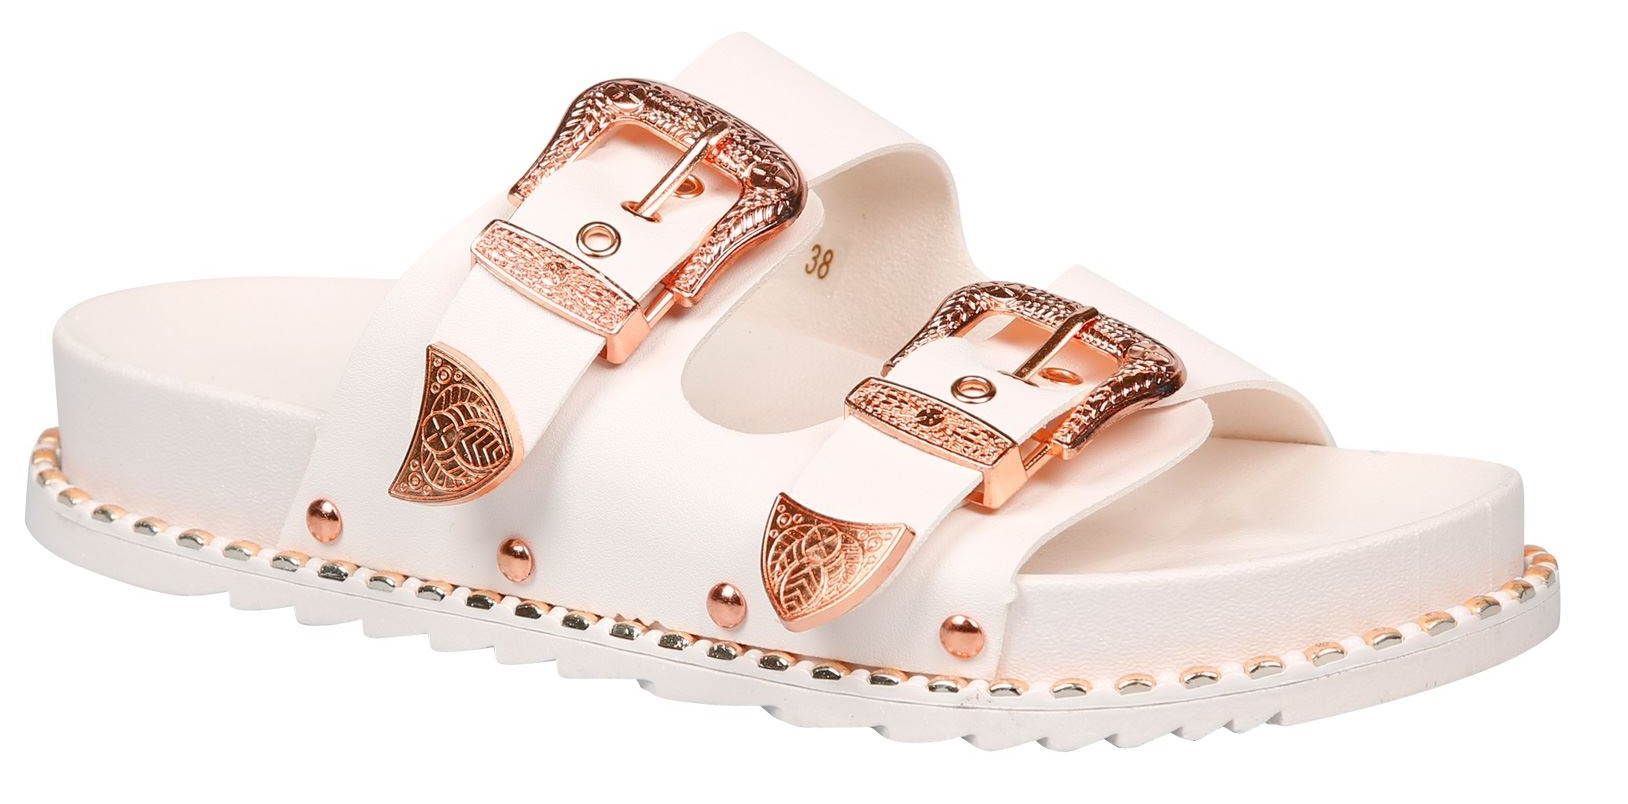 LADIES-WOMENS-FLAT-SLIDERS-STUDDED-SLIP-ON-MULE-SUMMER-HOILDAY-SANDALS-SHOES-SZ thumbnail 17